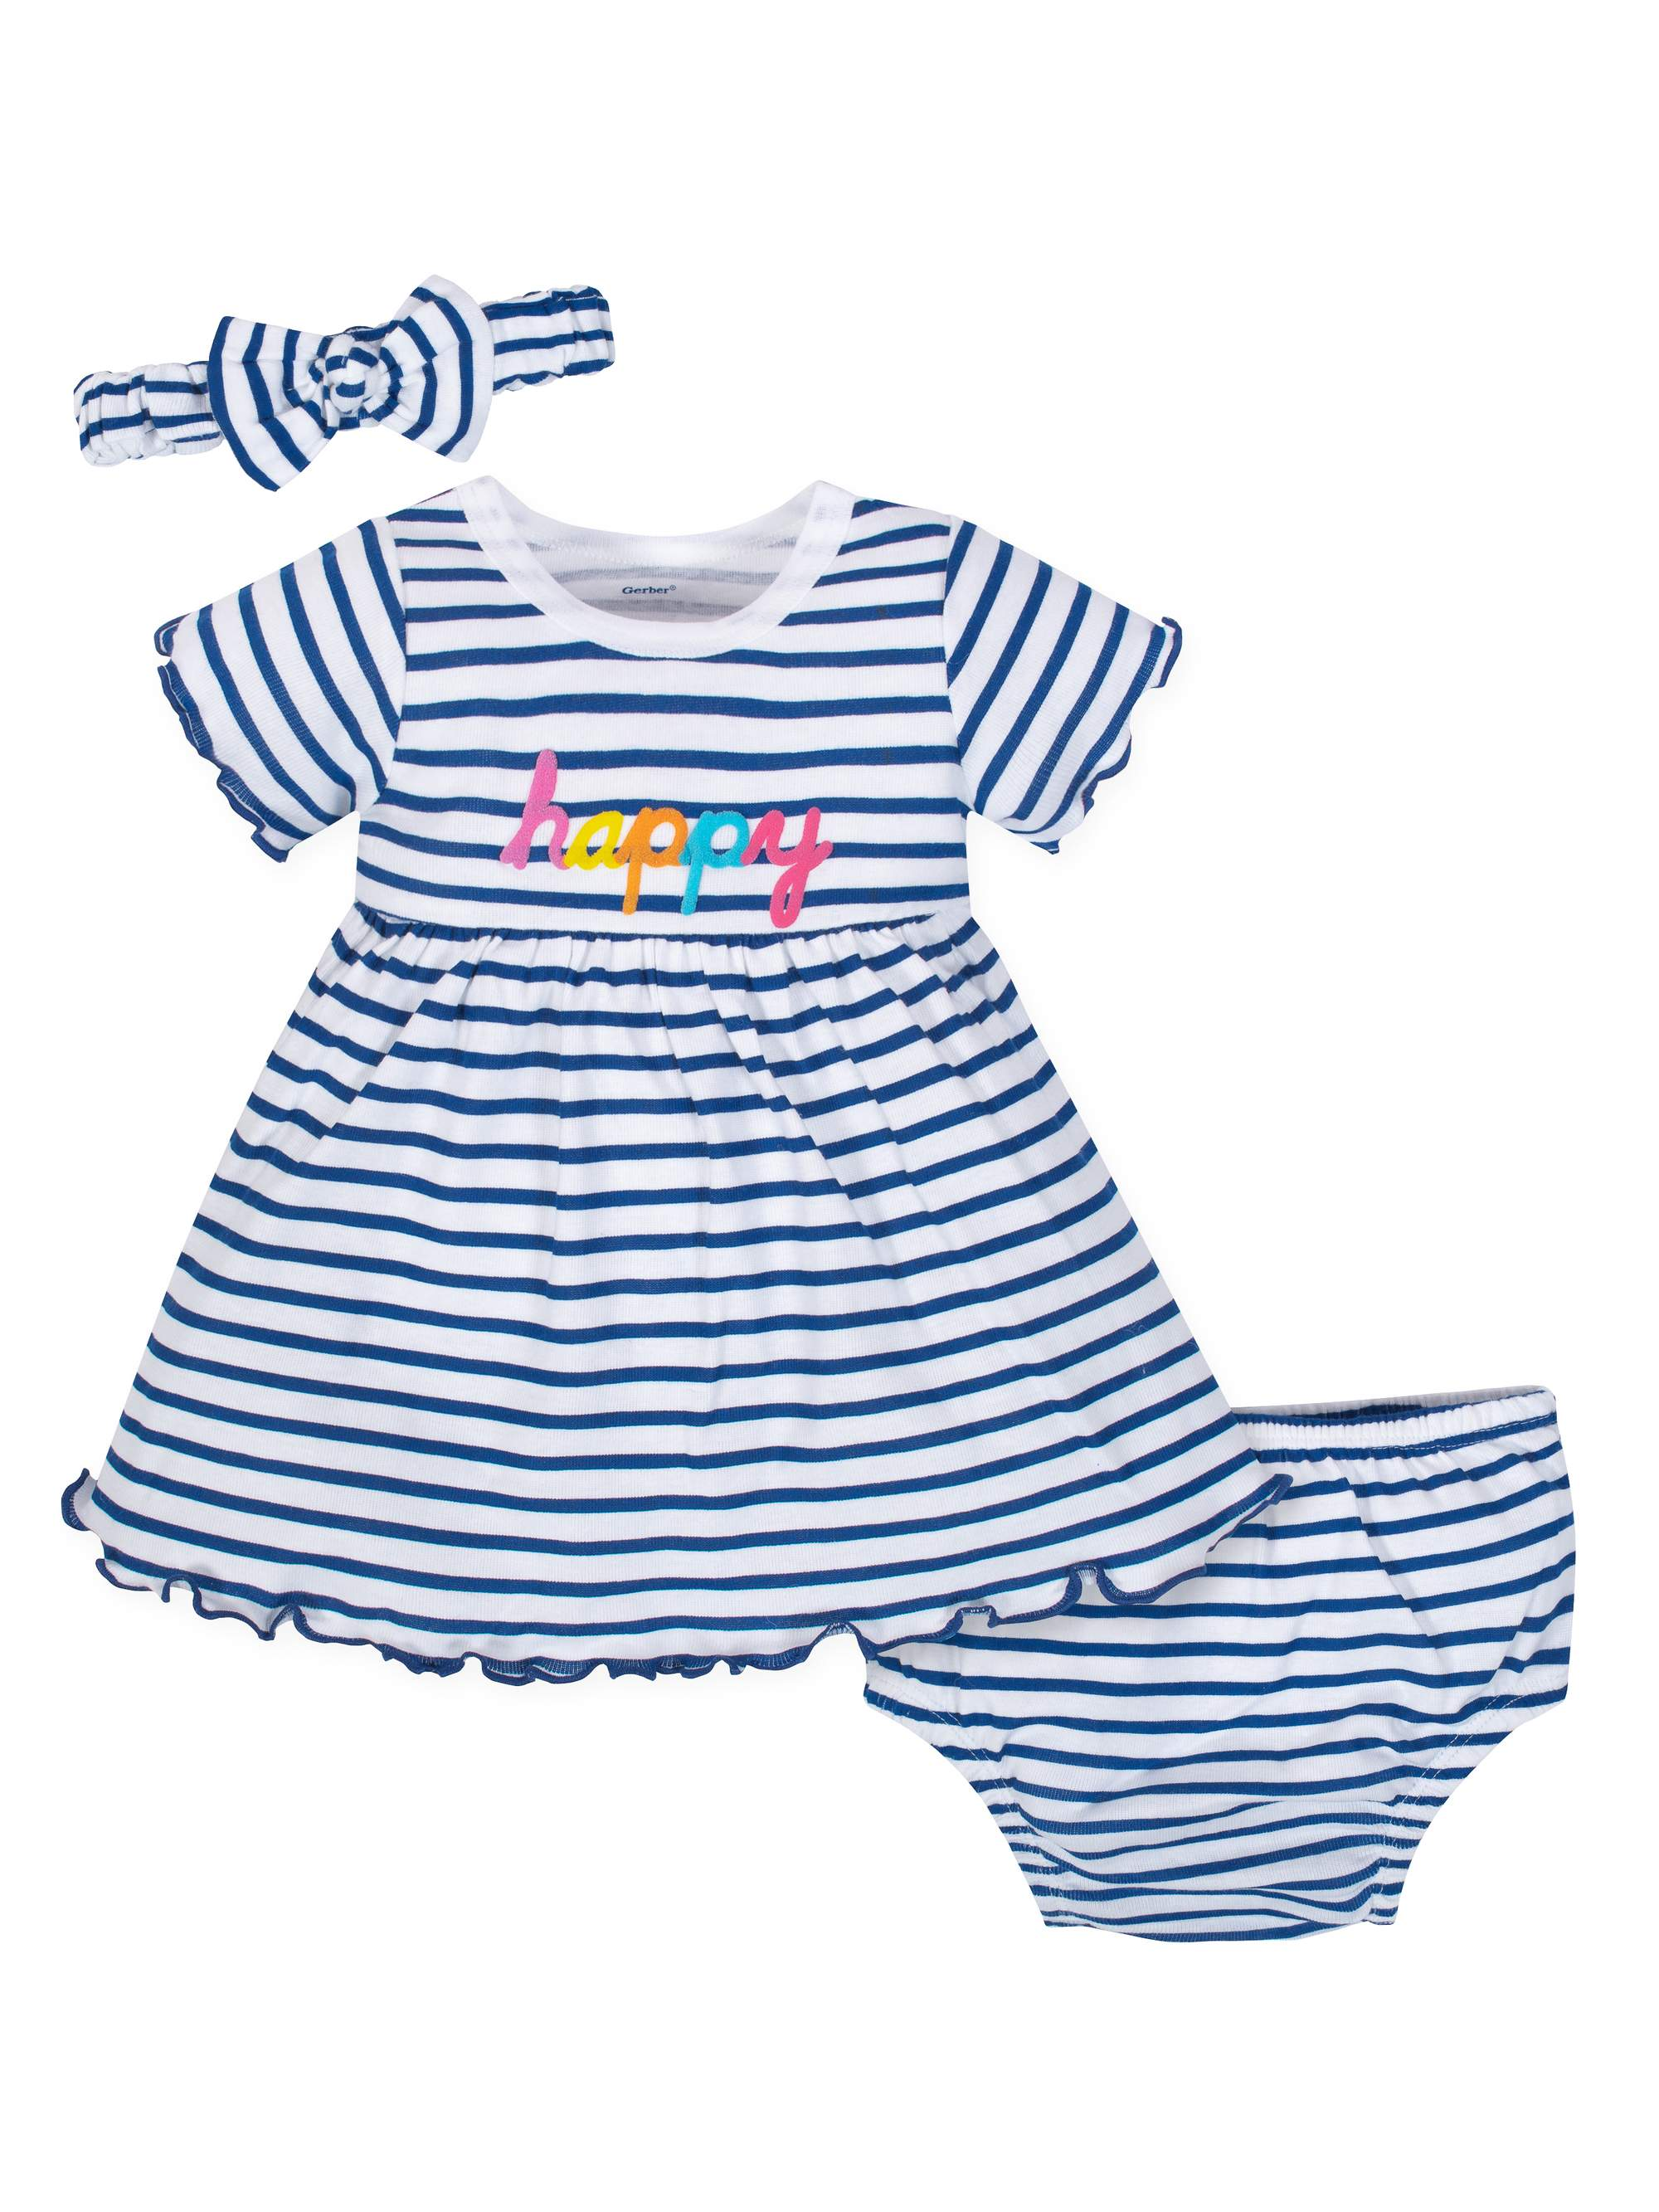 Dress with Diaper Cover and Headband Outfit Set, 3pc (Baby Girls)